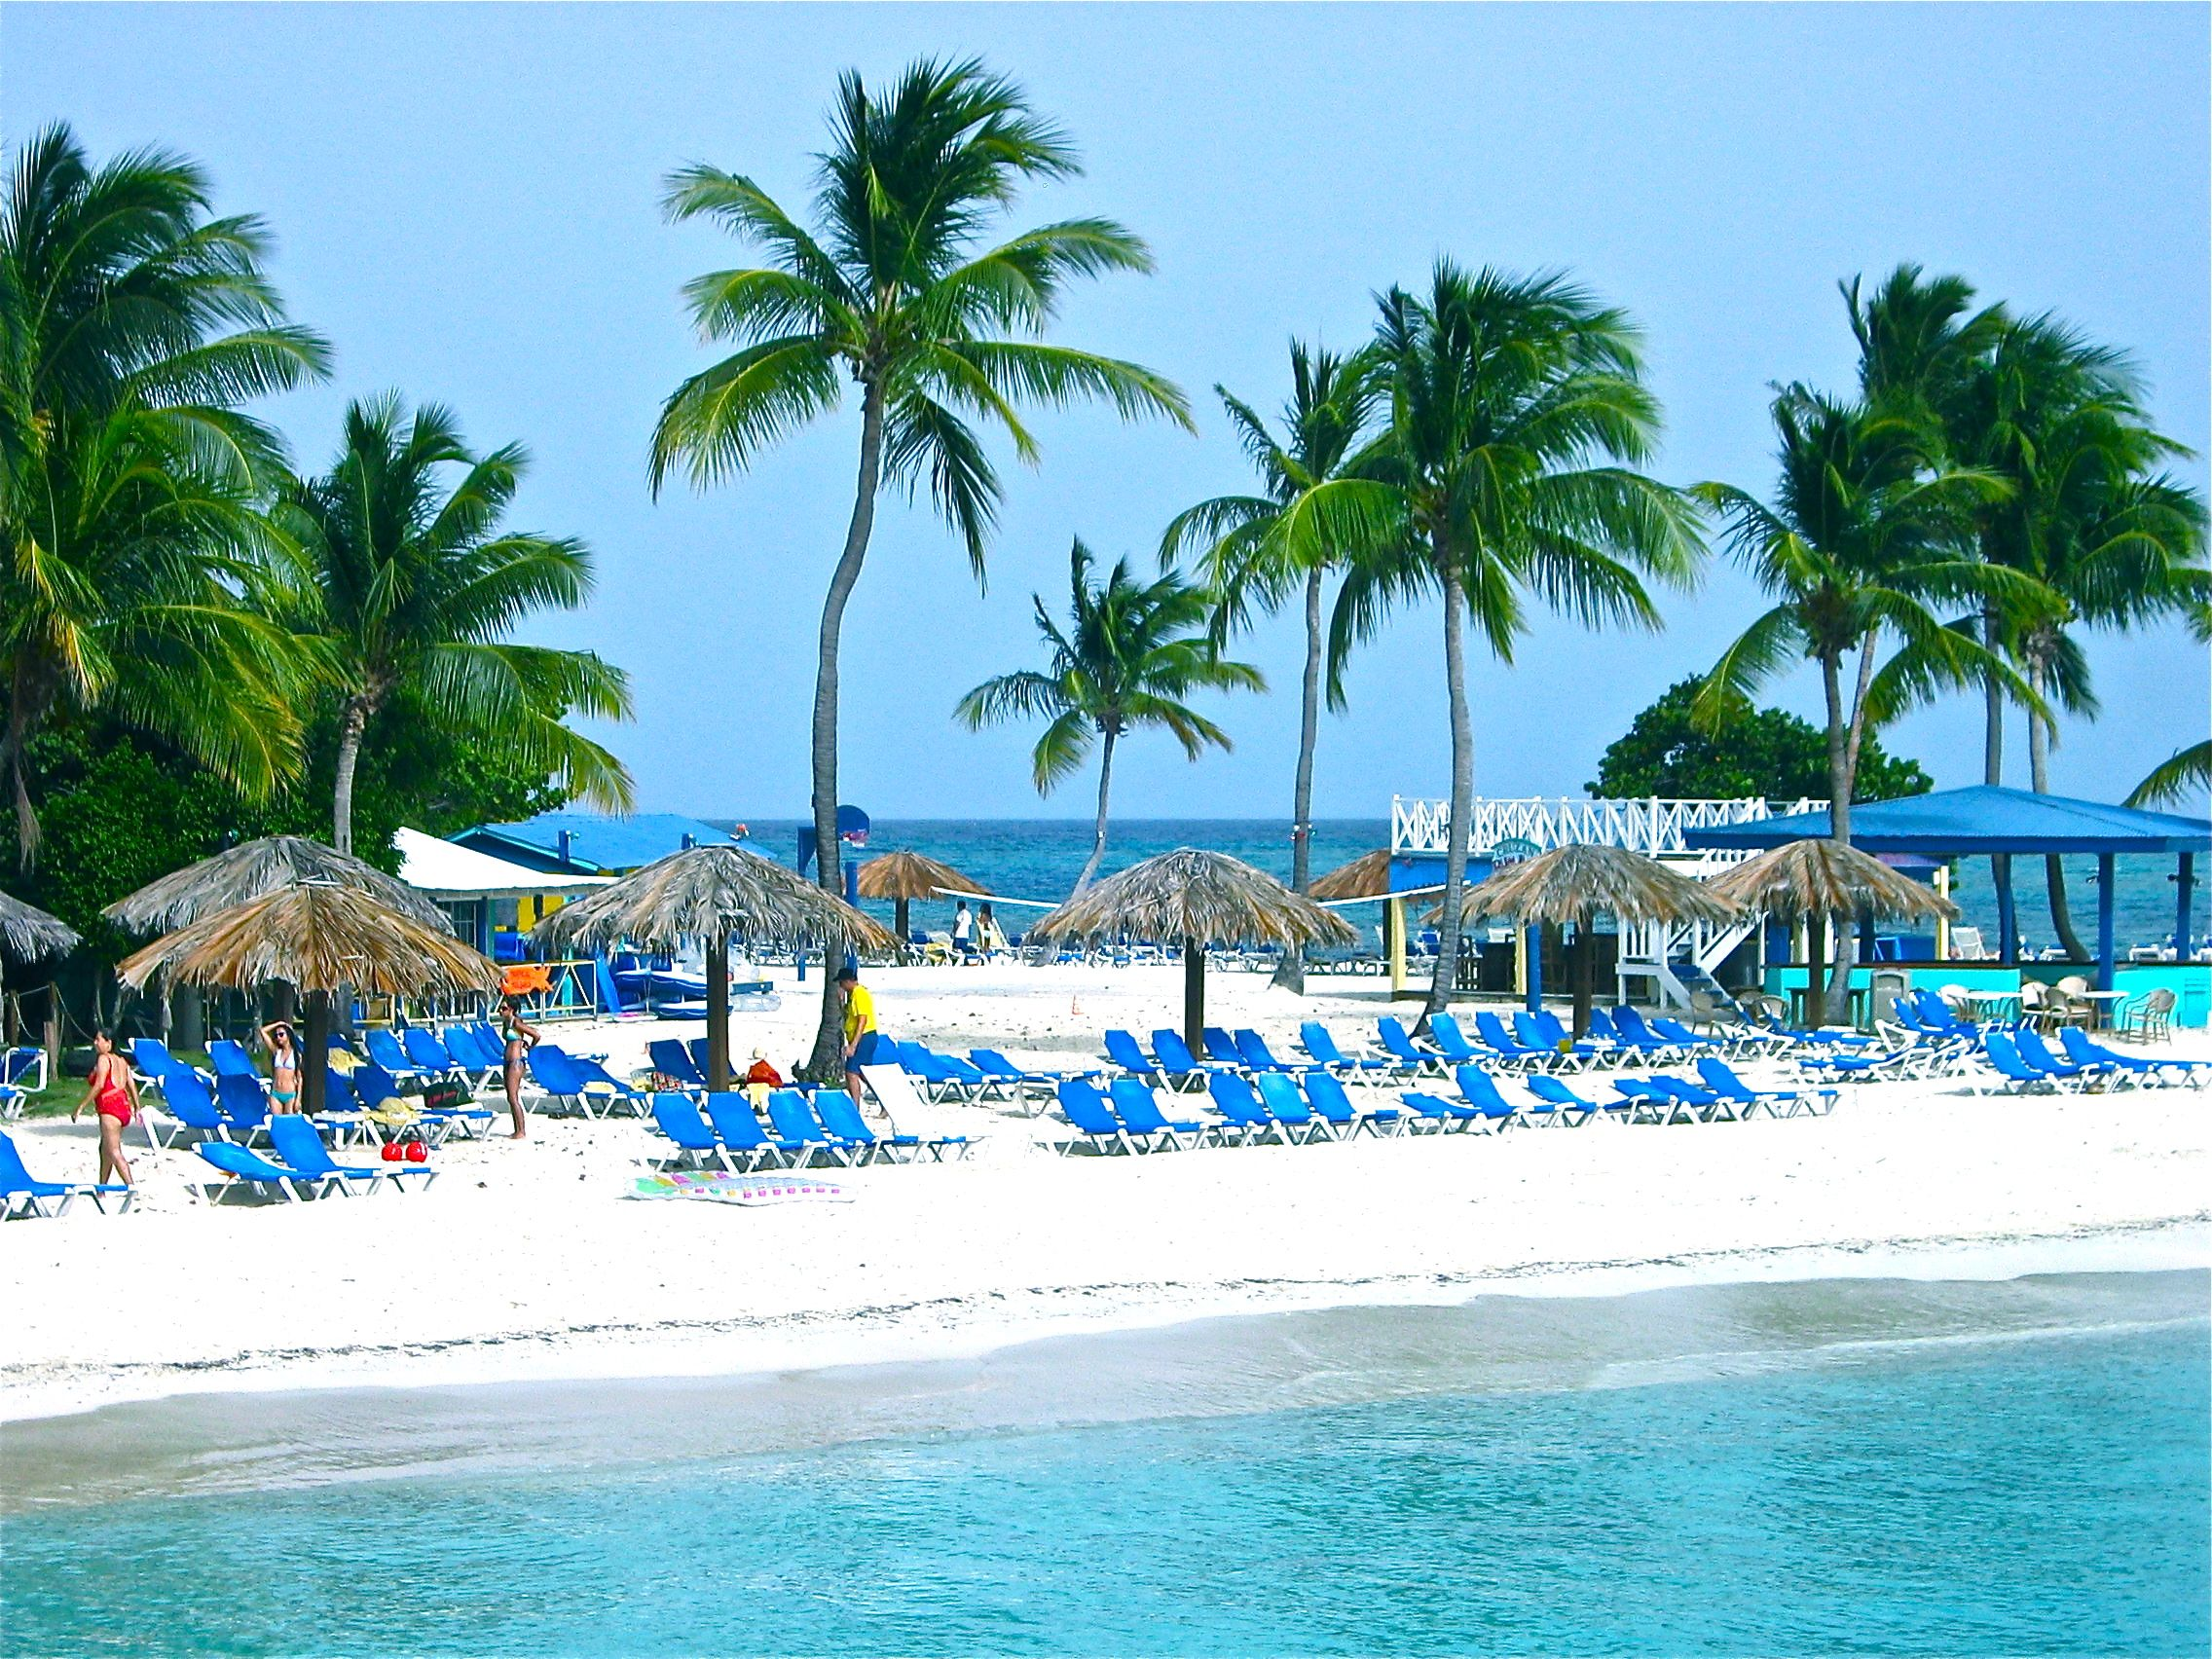 Puerto rico puerto rico beach wallpaper puerto rico - Puerto rico beach background ...